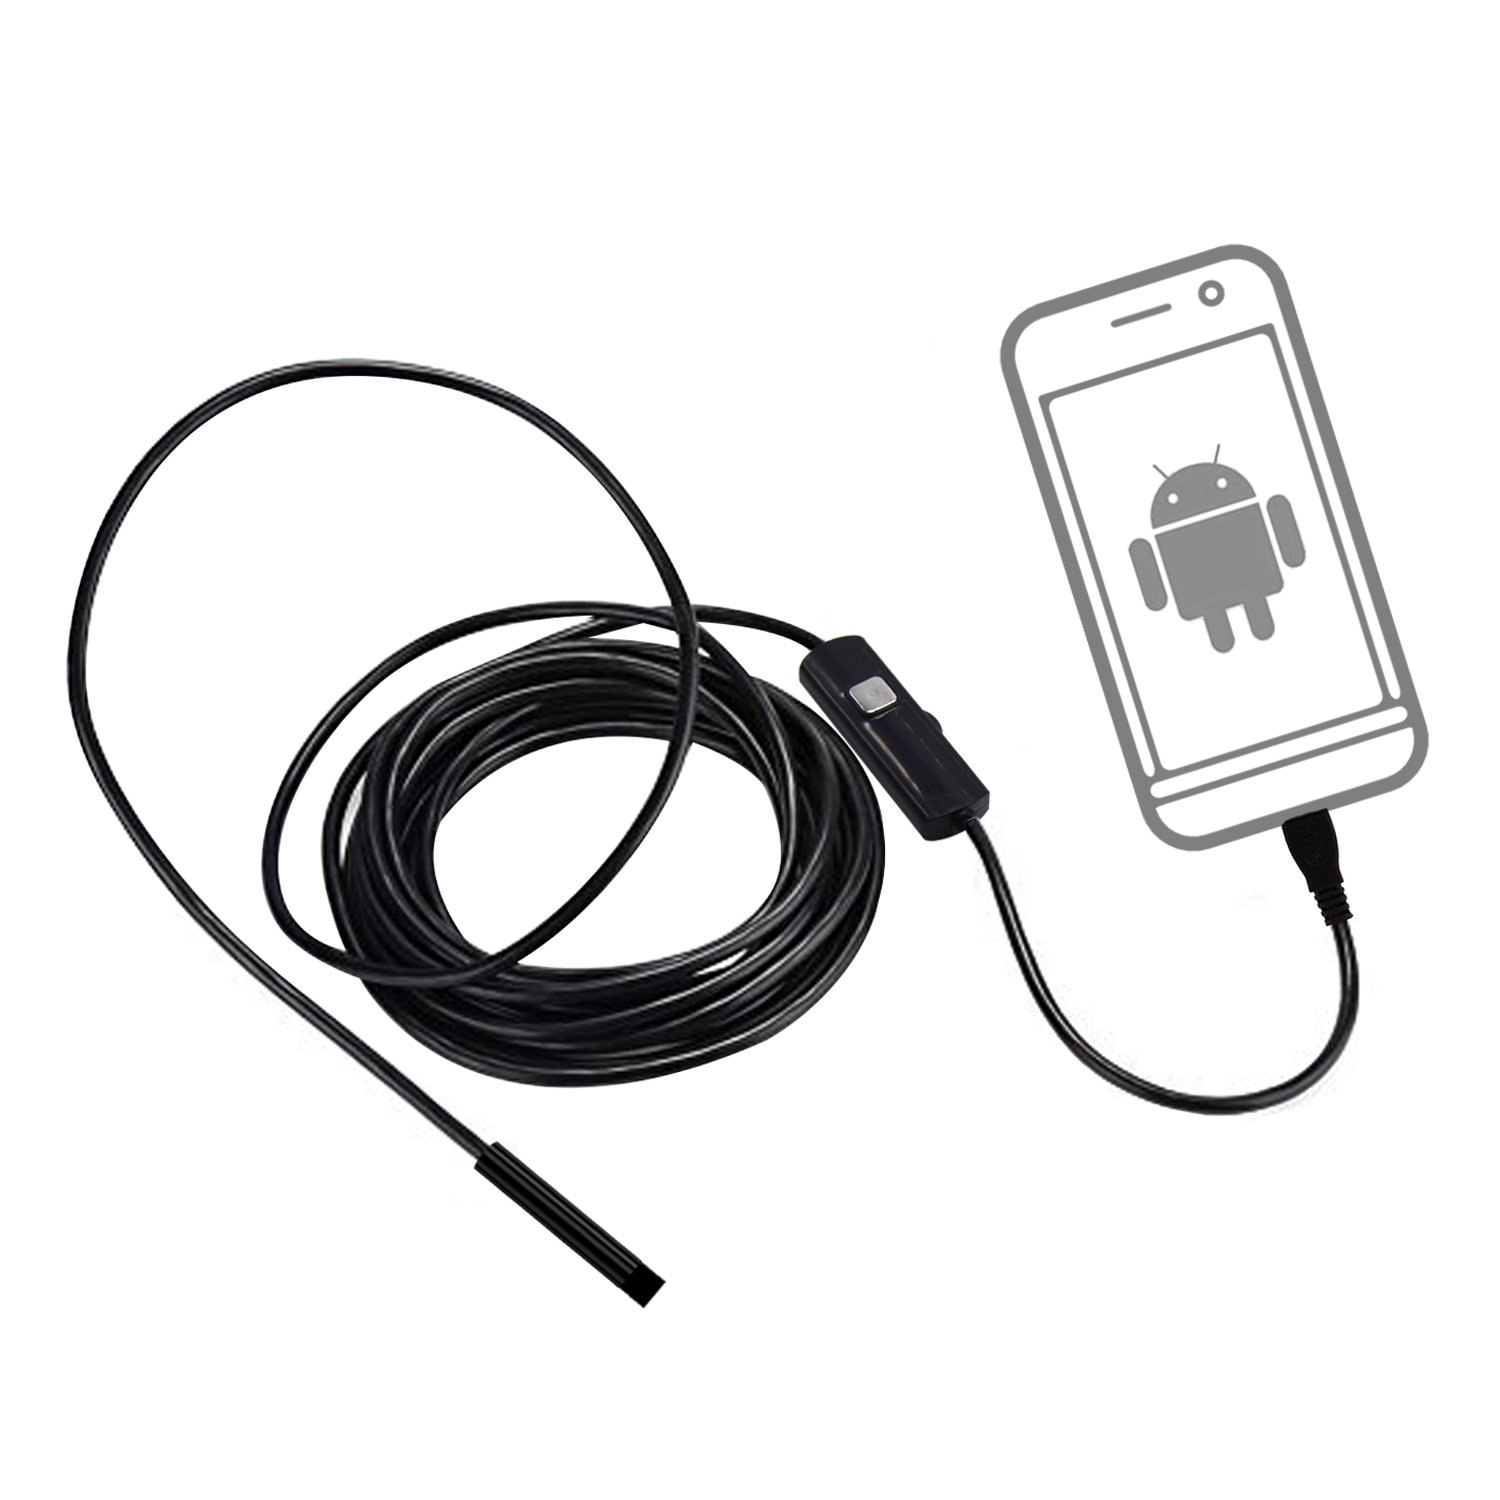 Yoolove USB Android Endoscope 5.5mm Len IP67 Waterproof Micro Inspection Camera Borescope Snake Tube Pipe With 6 LED for Samsung Apple Phone With OTG and UVC (5m)